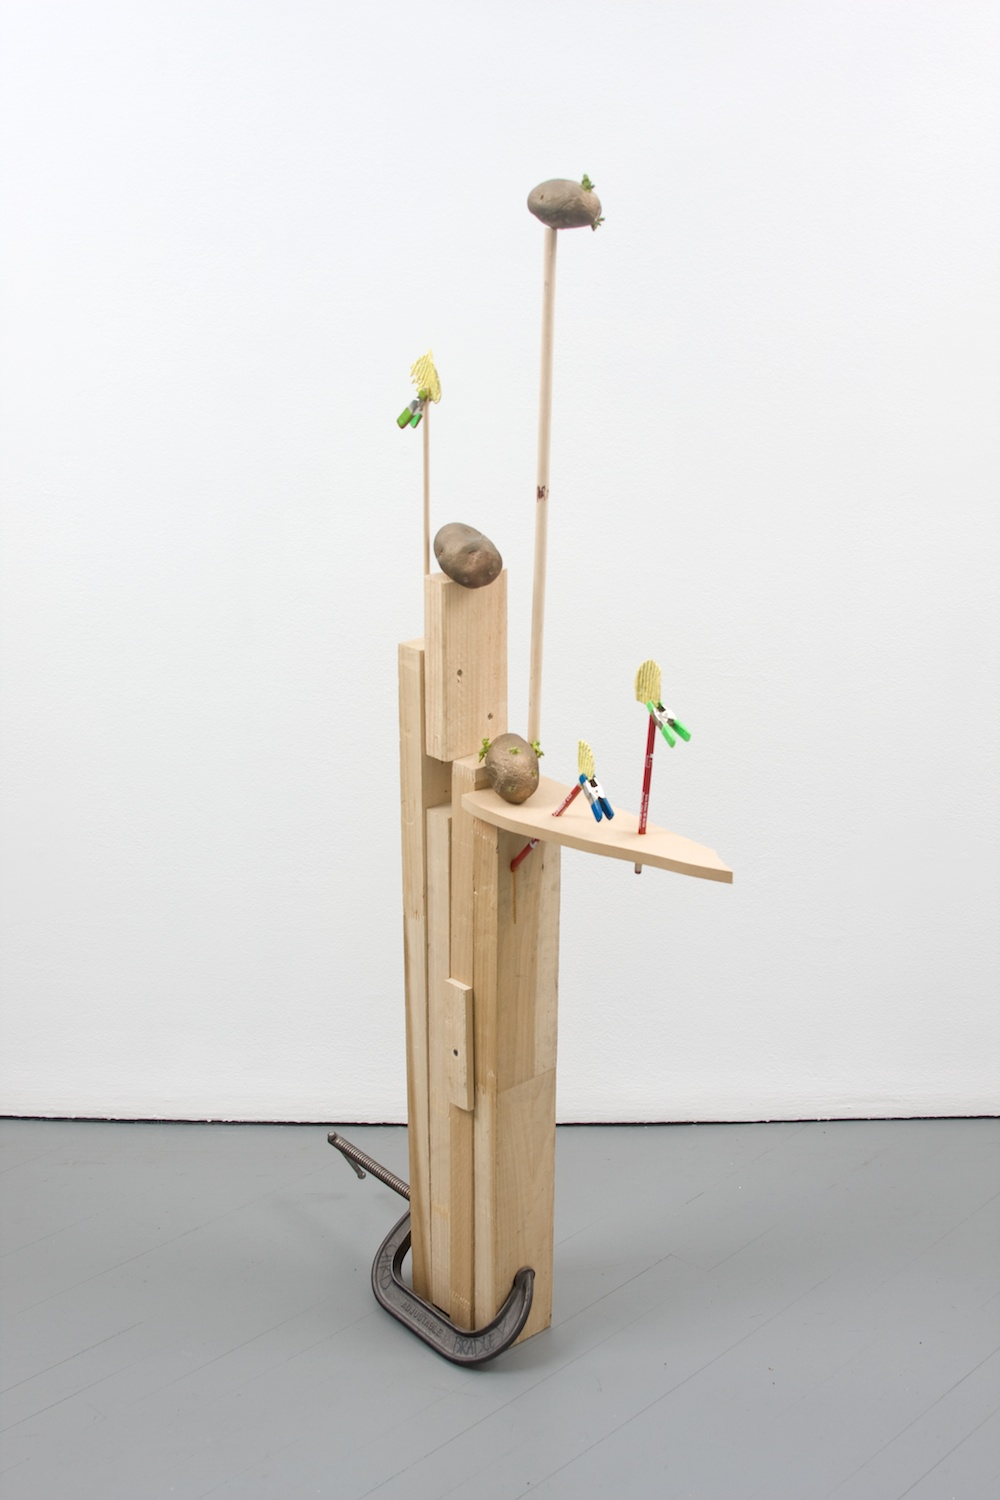 Chris Bradley  Target #2  2011 Cast bronze, paint, wood, clamps, and pencils 50 ½h x 21w x 4d in CB007